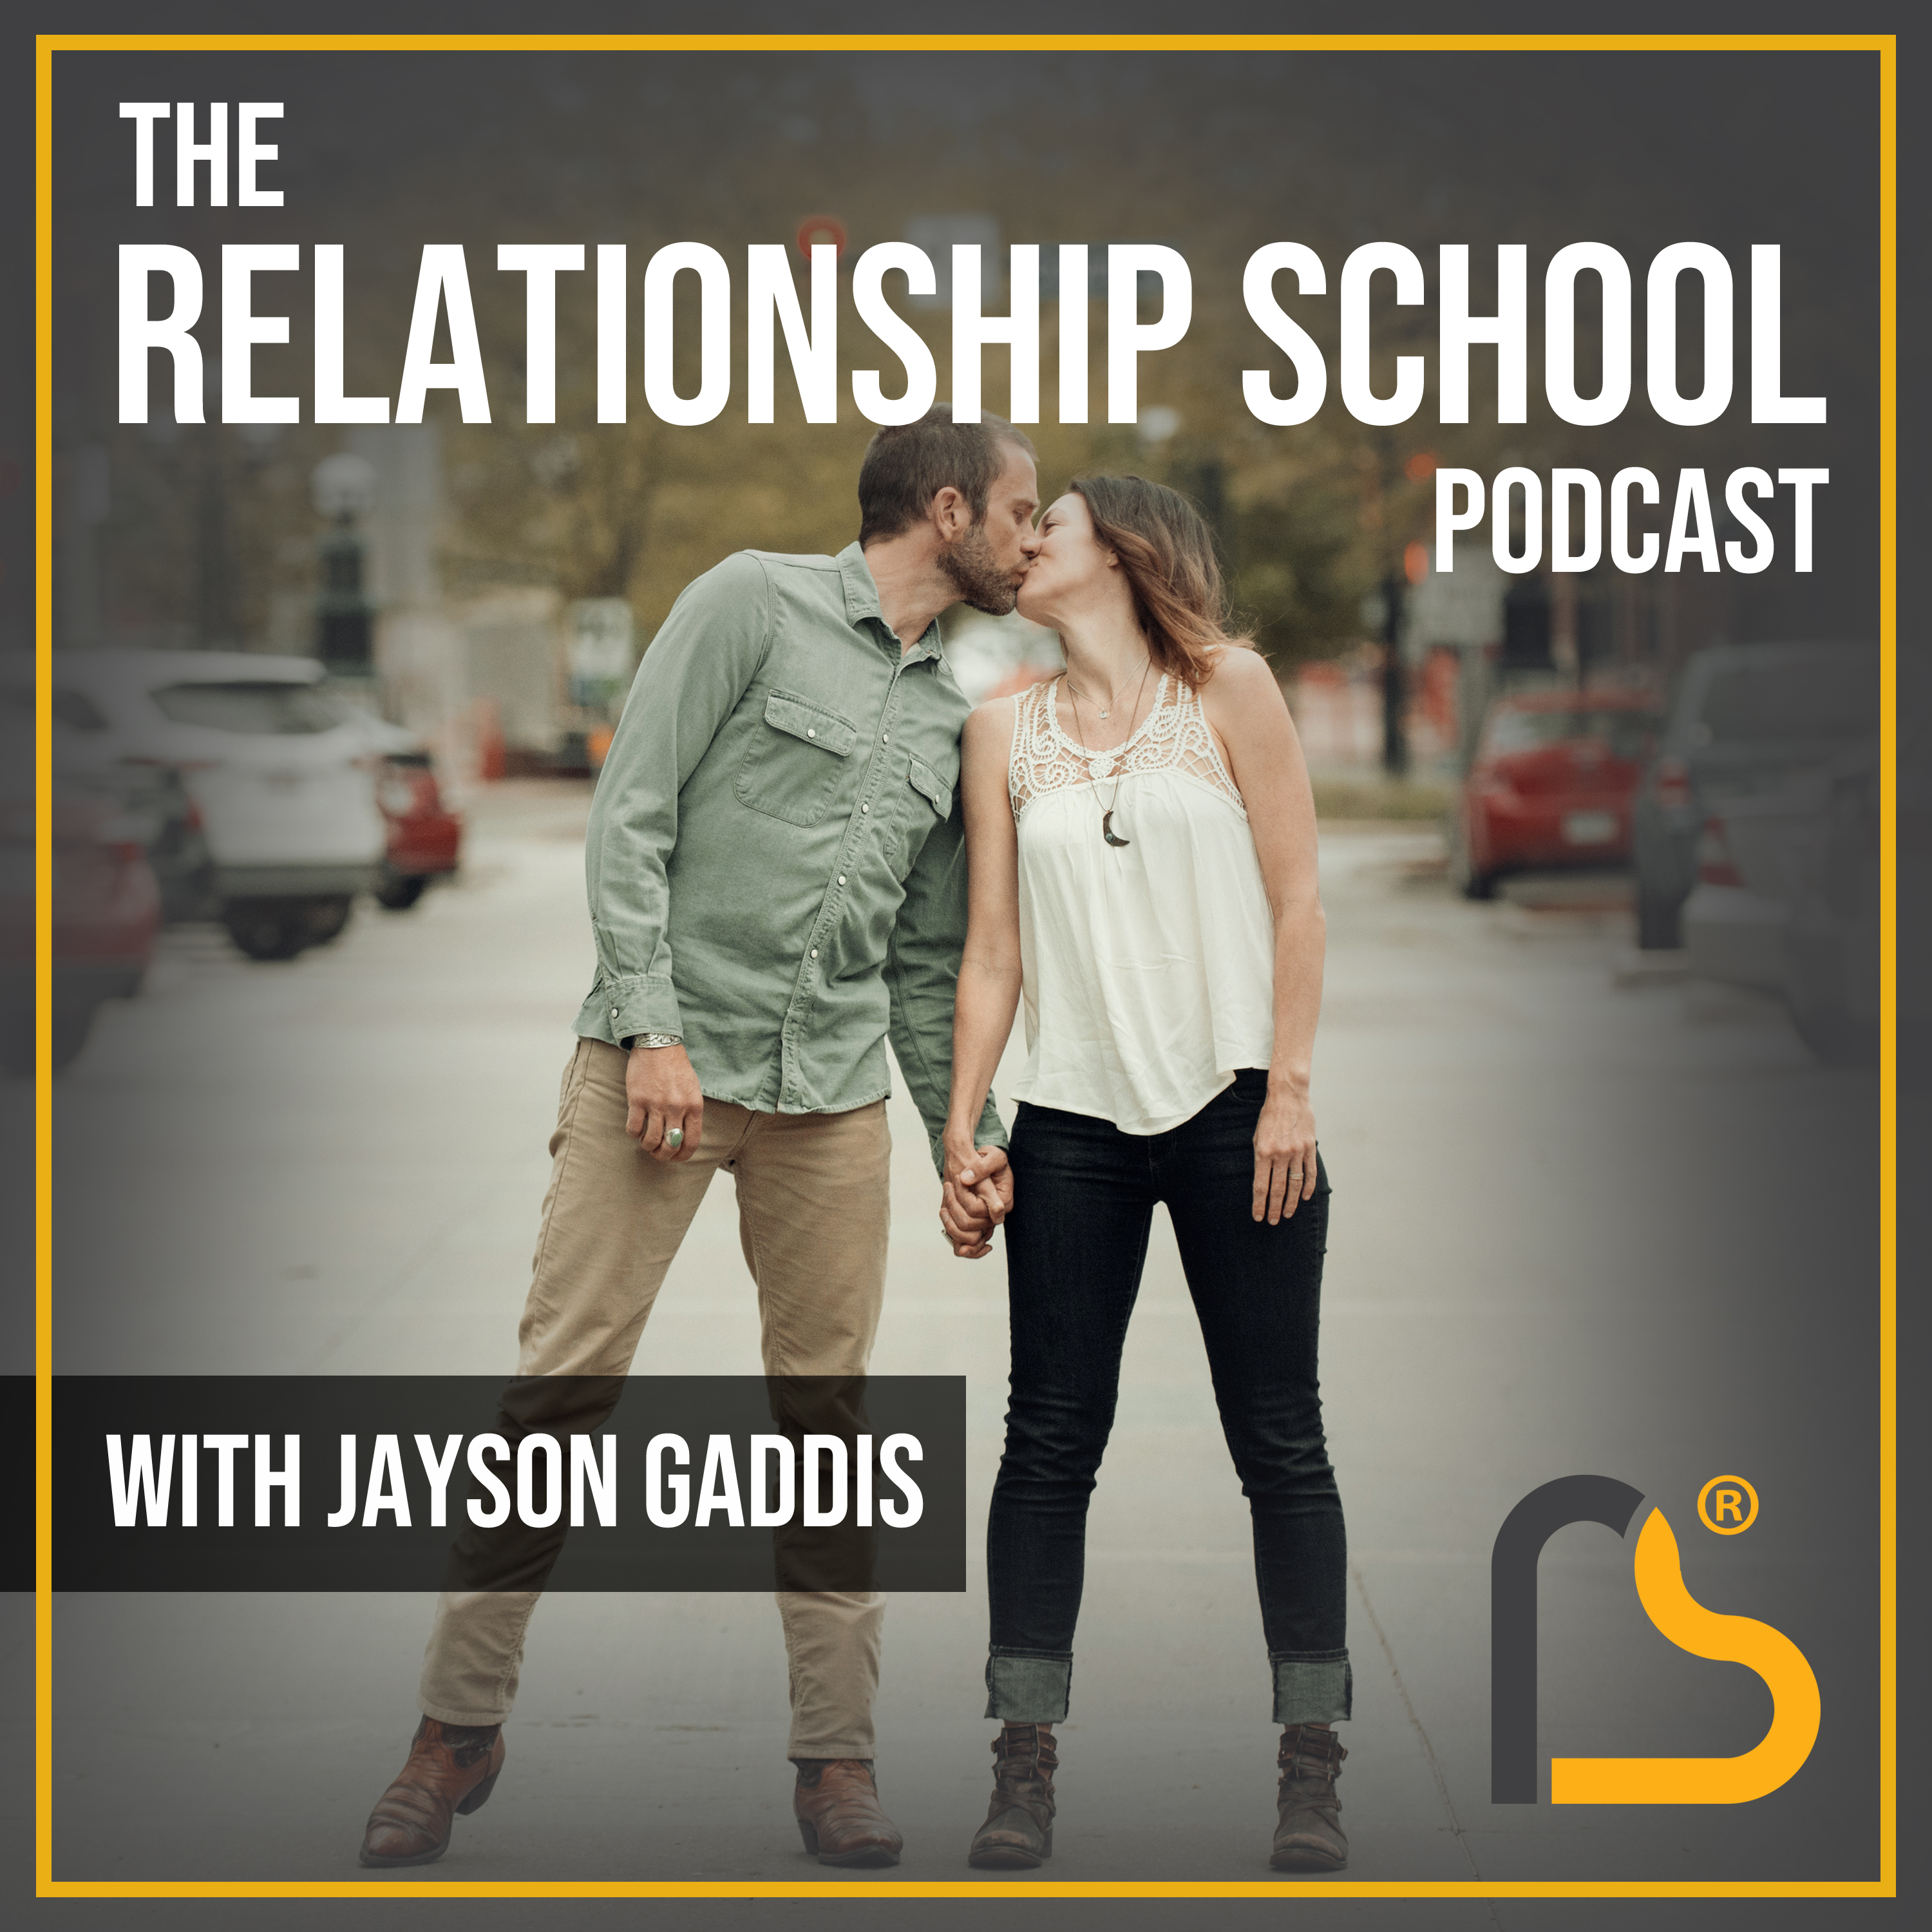 The Relationship School Podcast - How to feel accepted and connected - Relationship School Podcast EPISODE 255